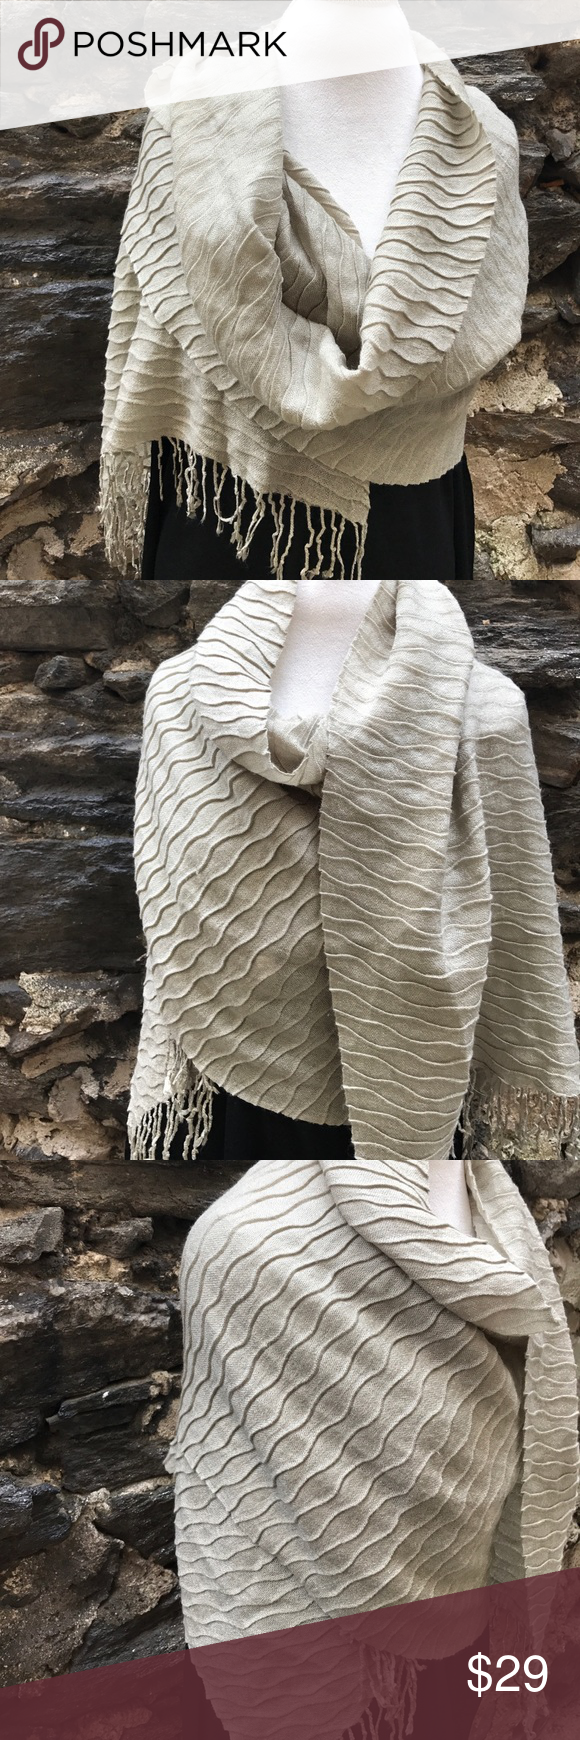 Echo Evening Cocktail Shawl / Wrap in Taupe Echo Evening Cocktail Shawl / Wrap in Taupe Echo Accessories Scarves & Wraps